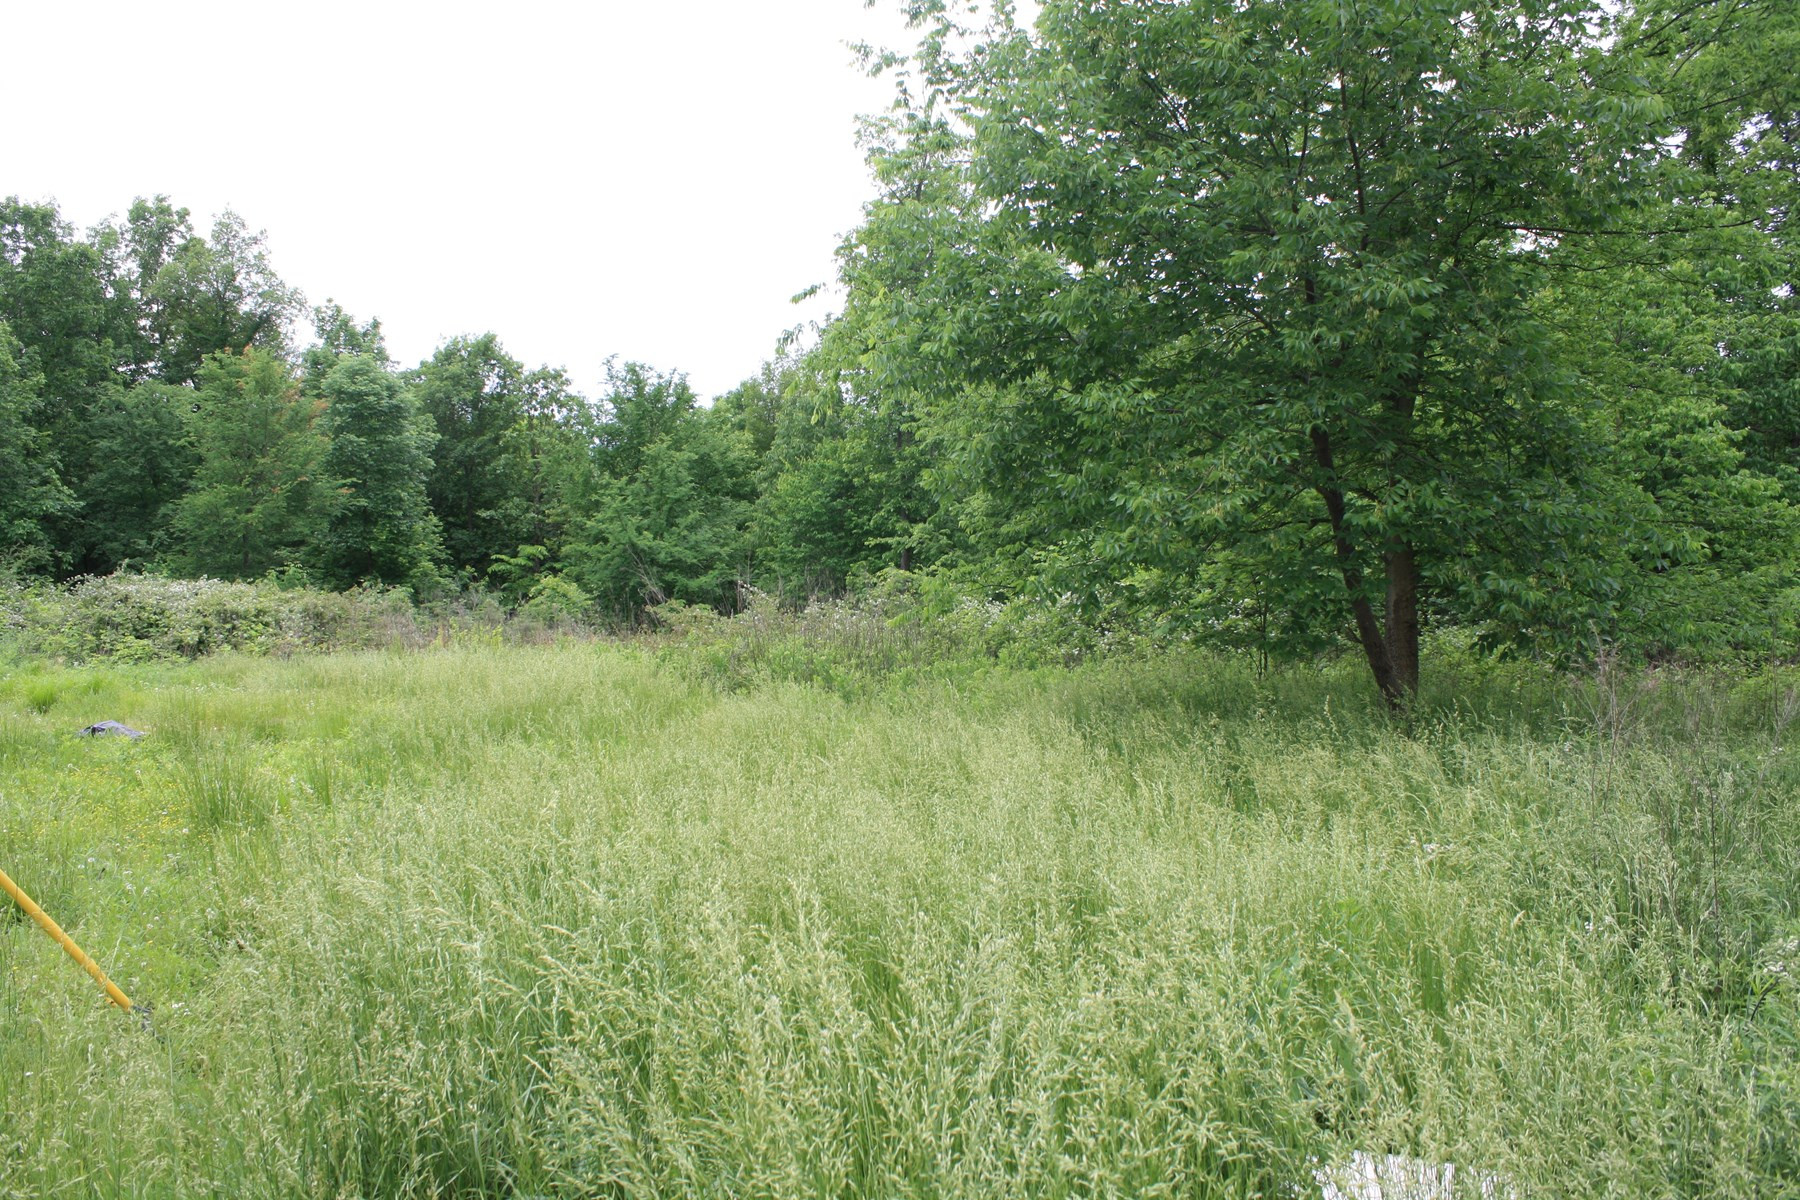 Wappapello Missouri Recreational Land For Sale 6 17 Acres